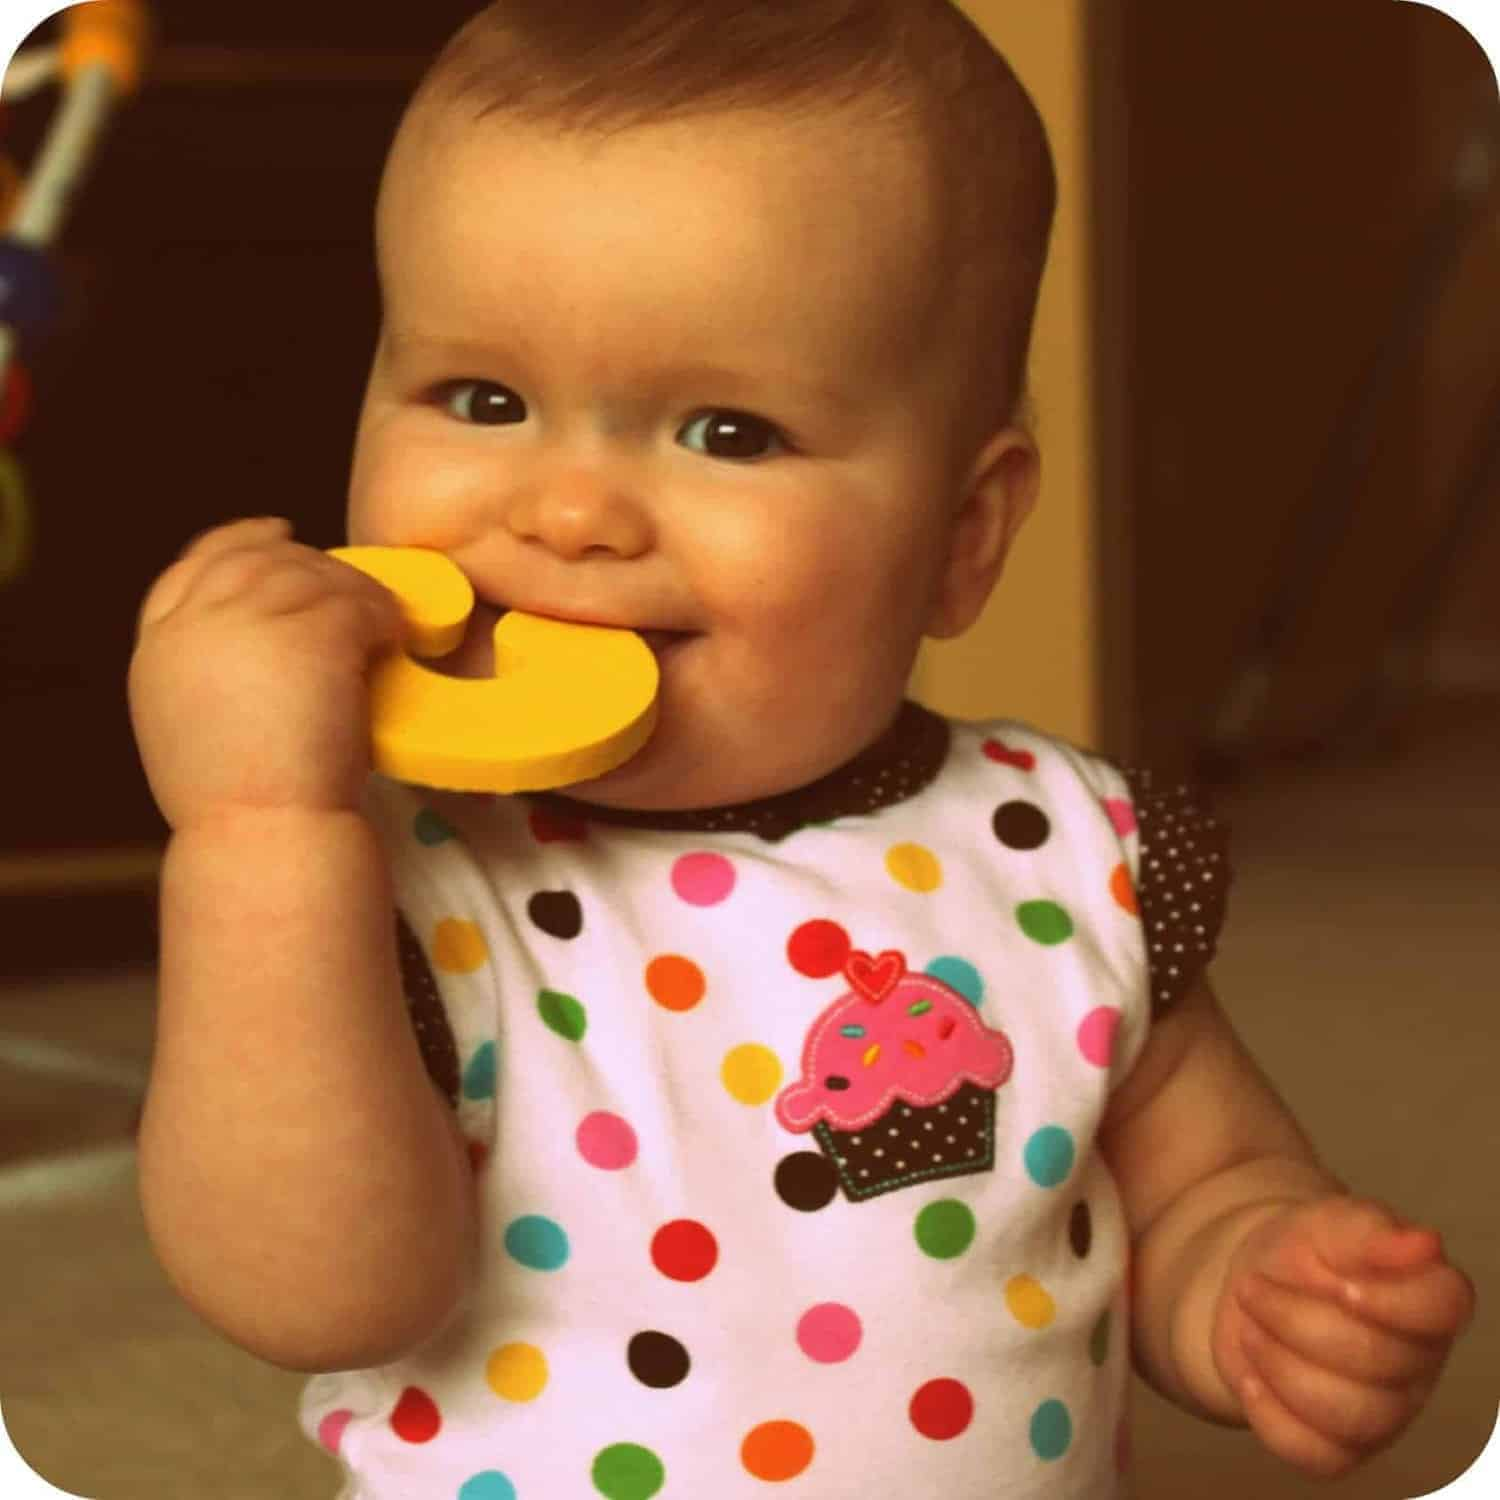 When Should Babies Stop Eating Baby Food